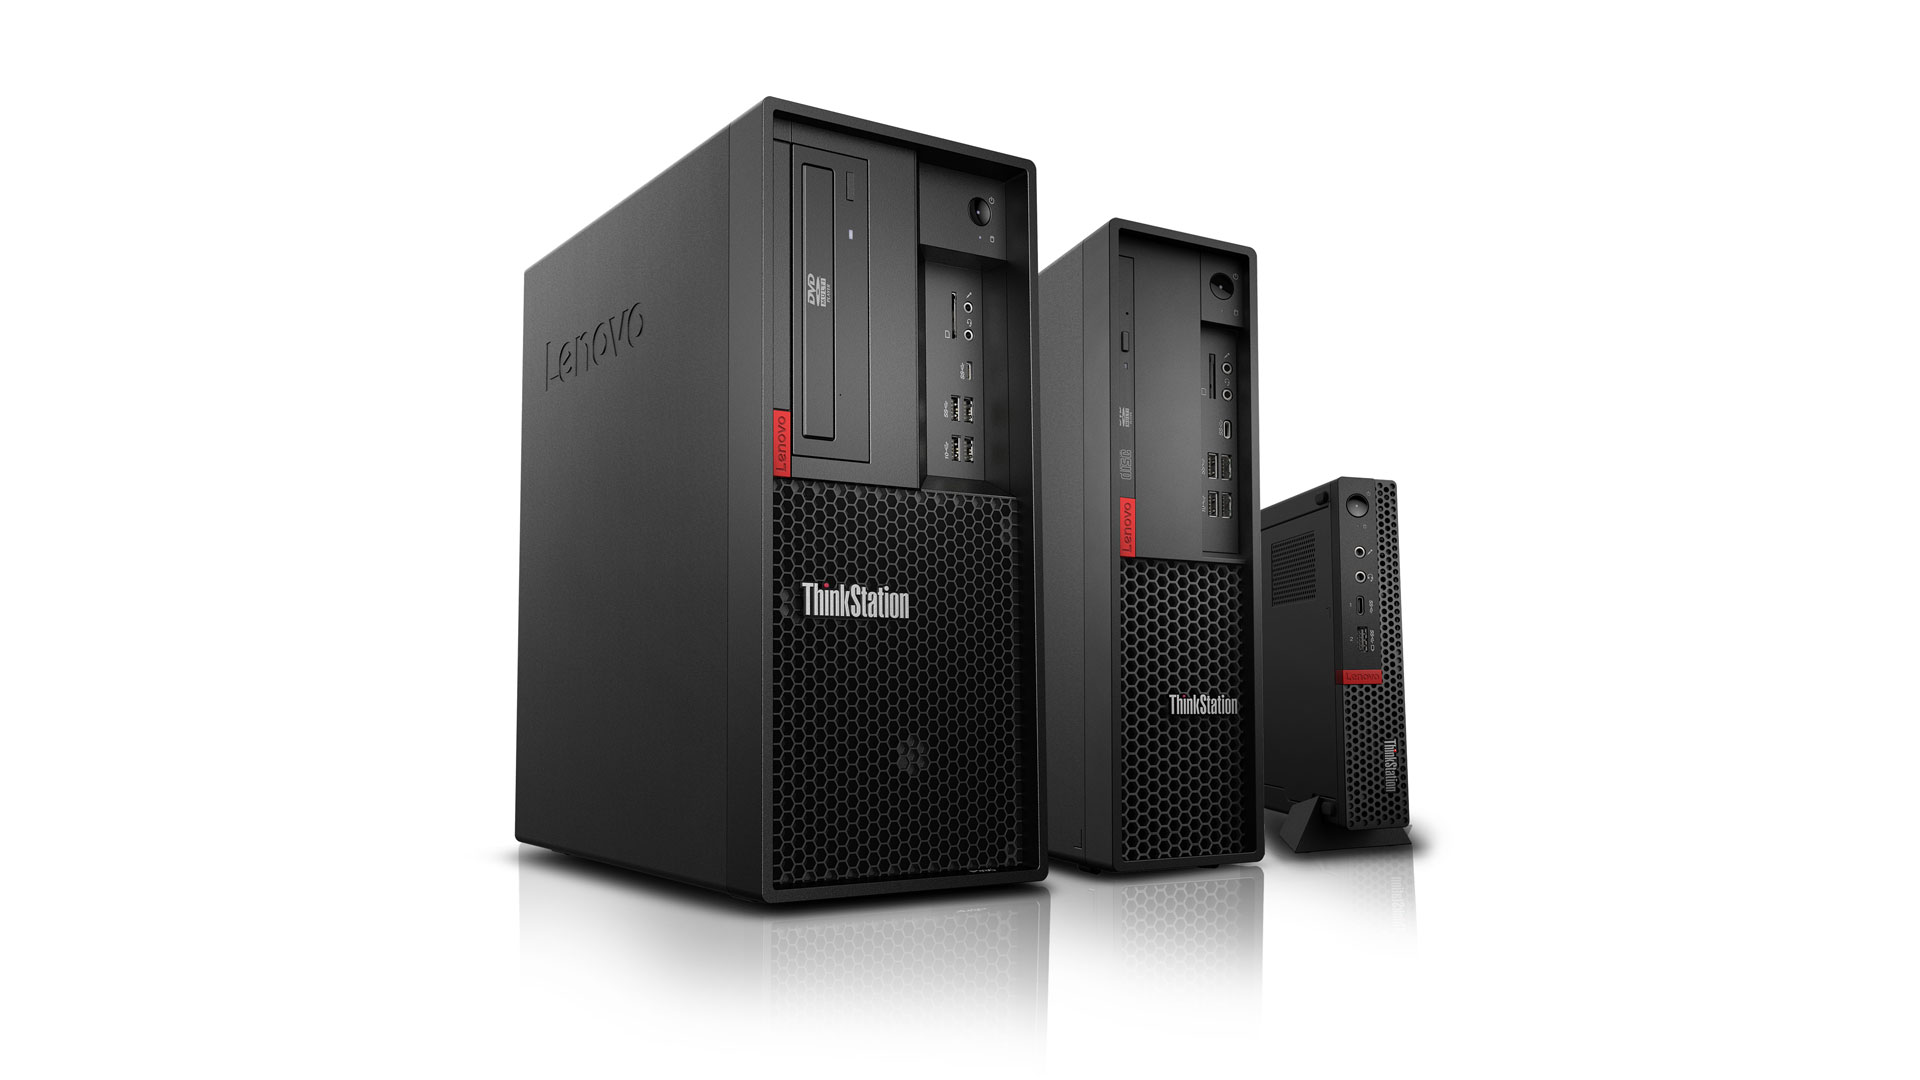 lenovo thinkstation p330 family